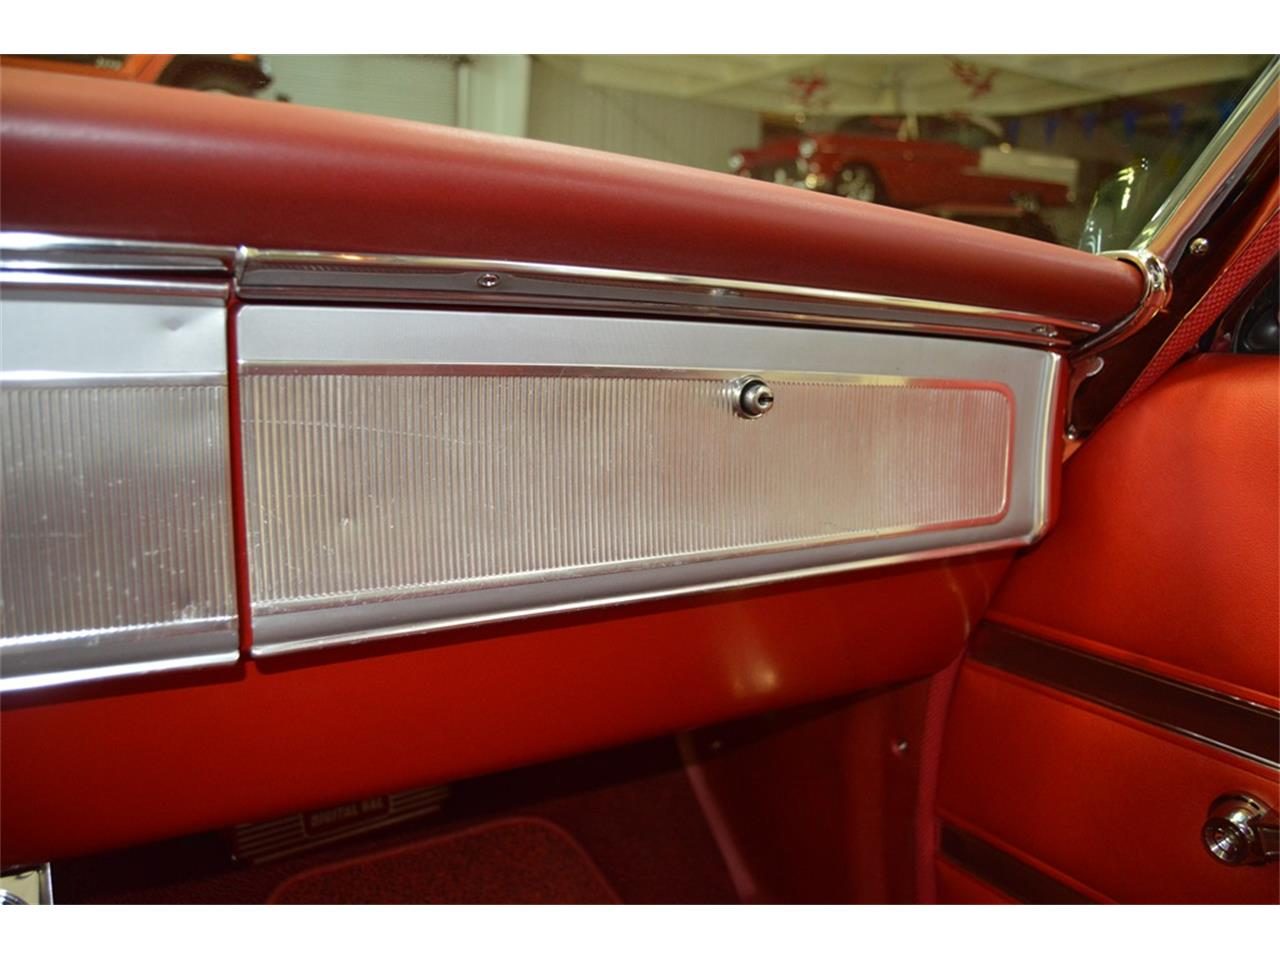 Large Picture of Classic 1964 Plymouth Sport Fury located in Loganville Georgia - $46,900.00 Offered by Sparky's Machines - OTO0